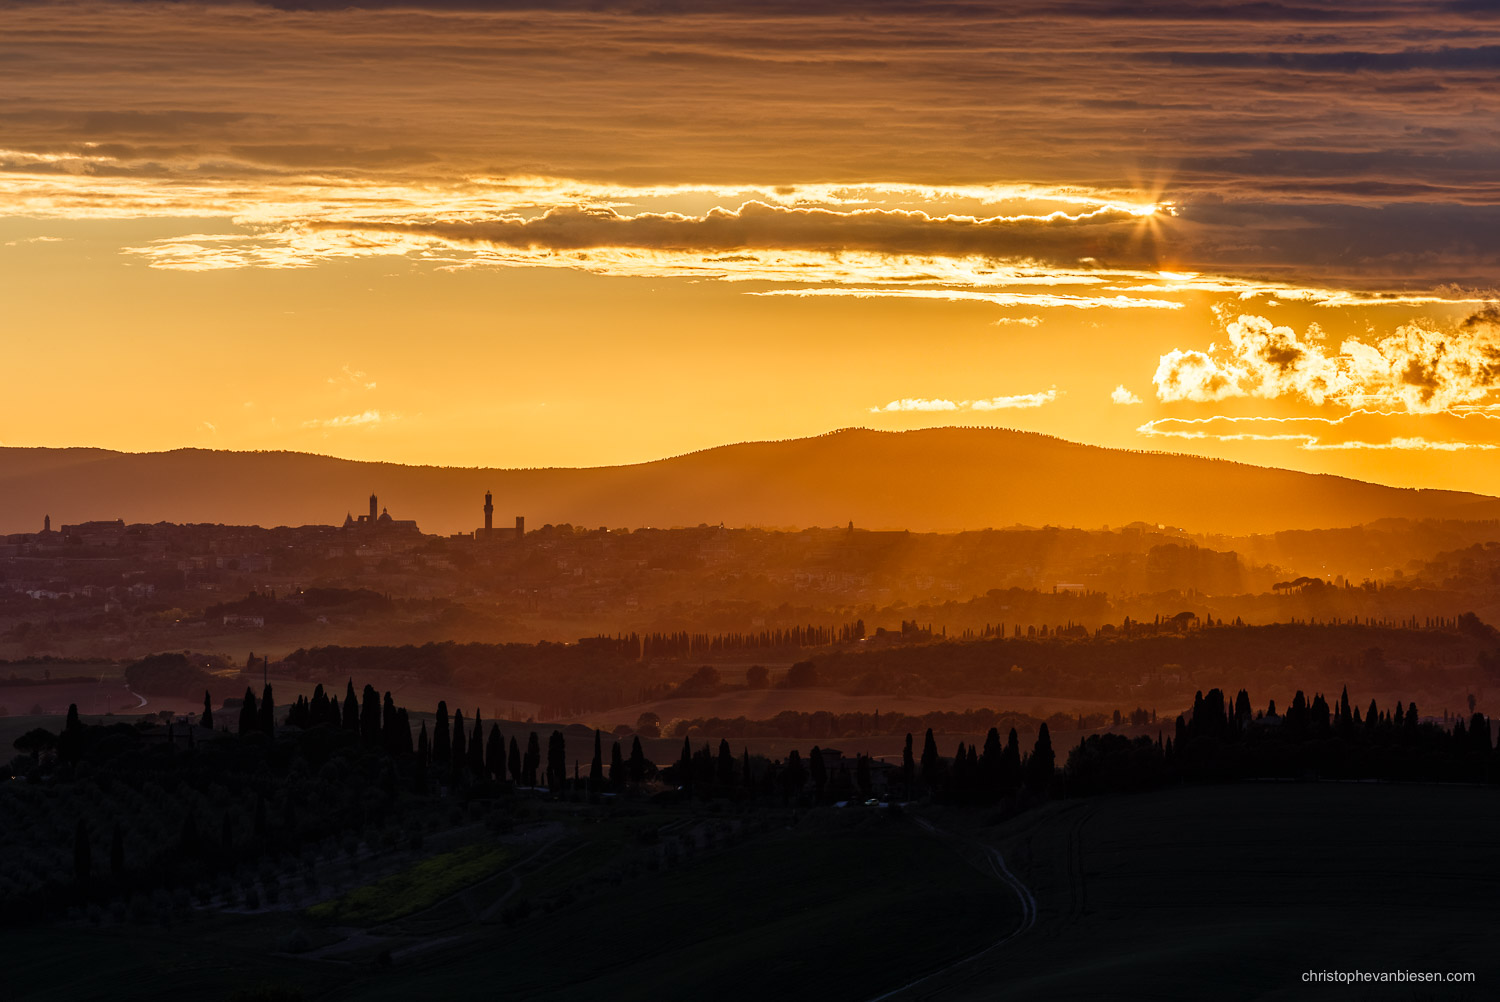 Tuscany - Italy - The city of Siena seen from the Crete Senesi during sunset - Sunset over Siena